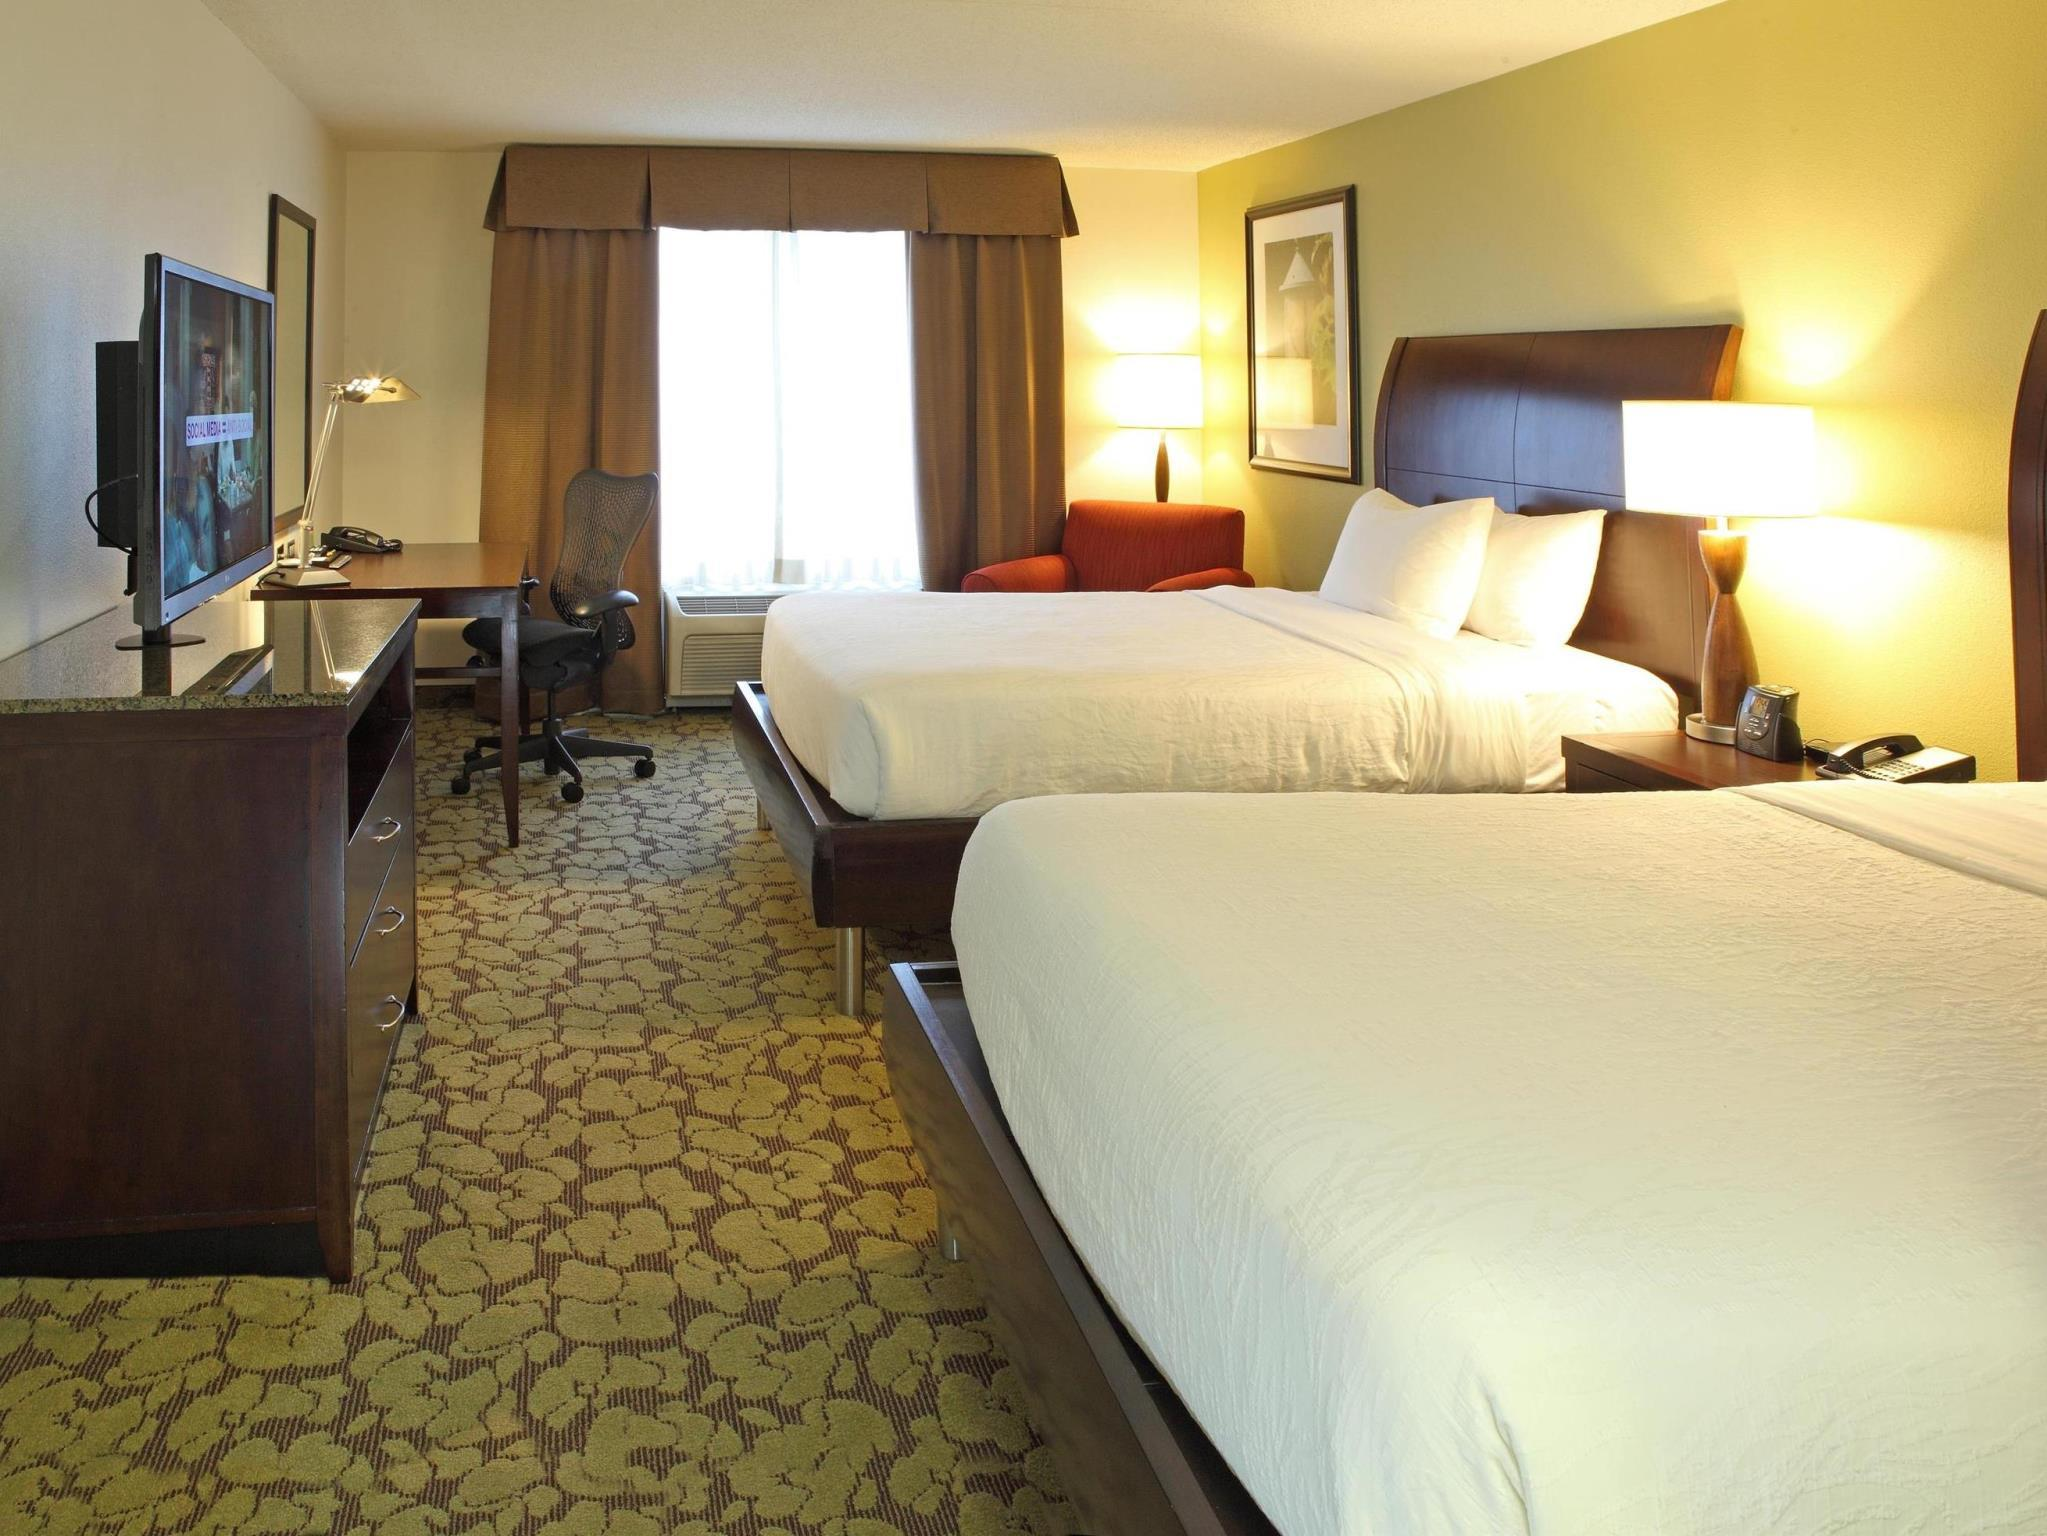 2 queen beds - Hilton Garden Inn Frederick Md